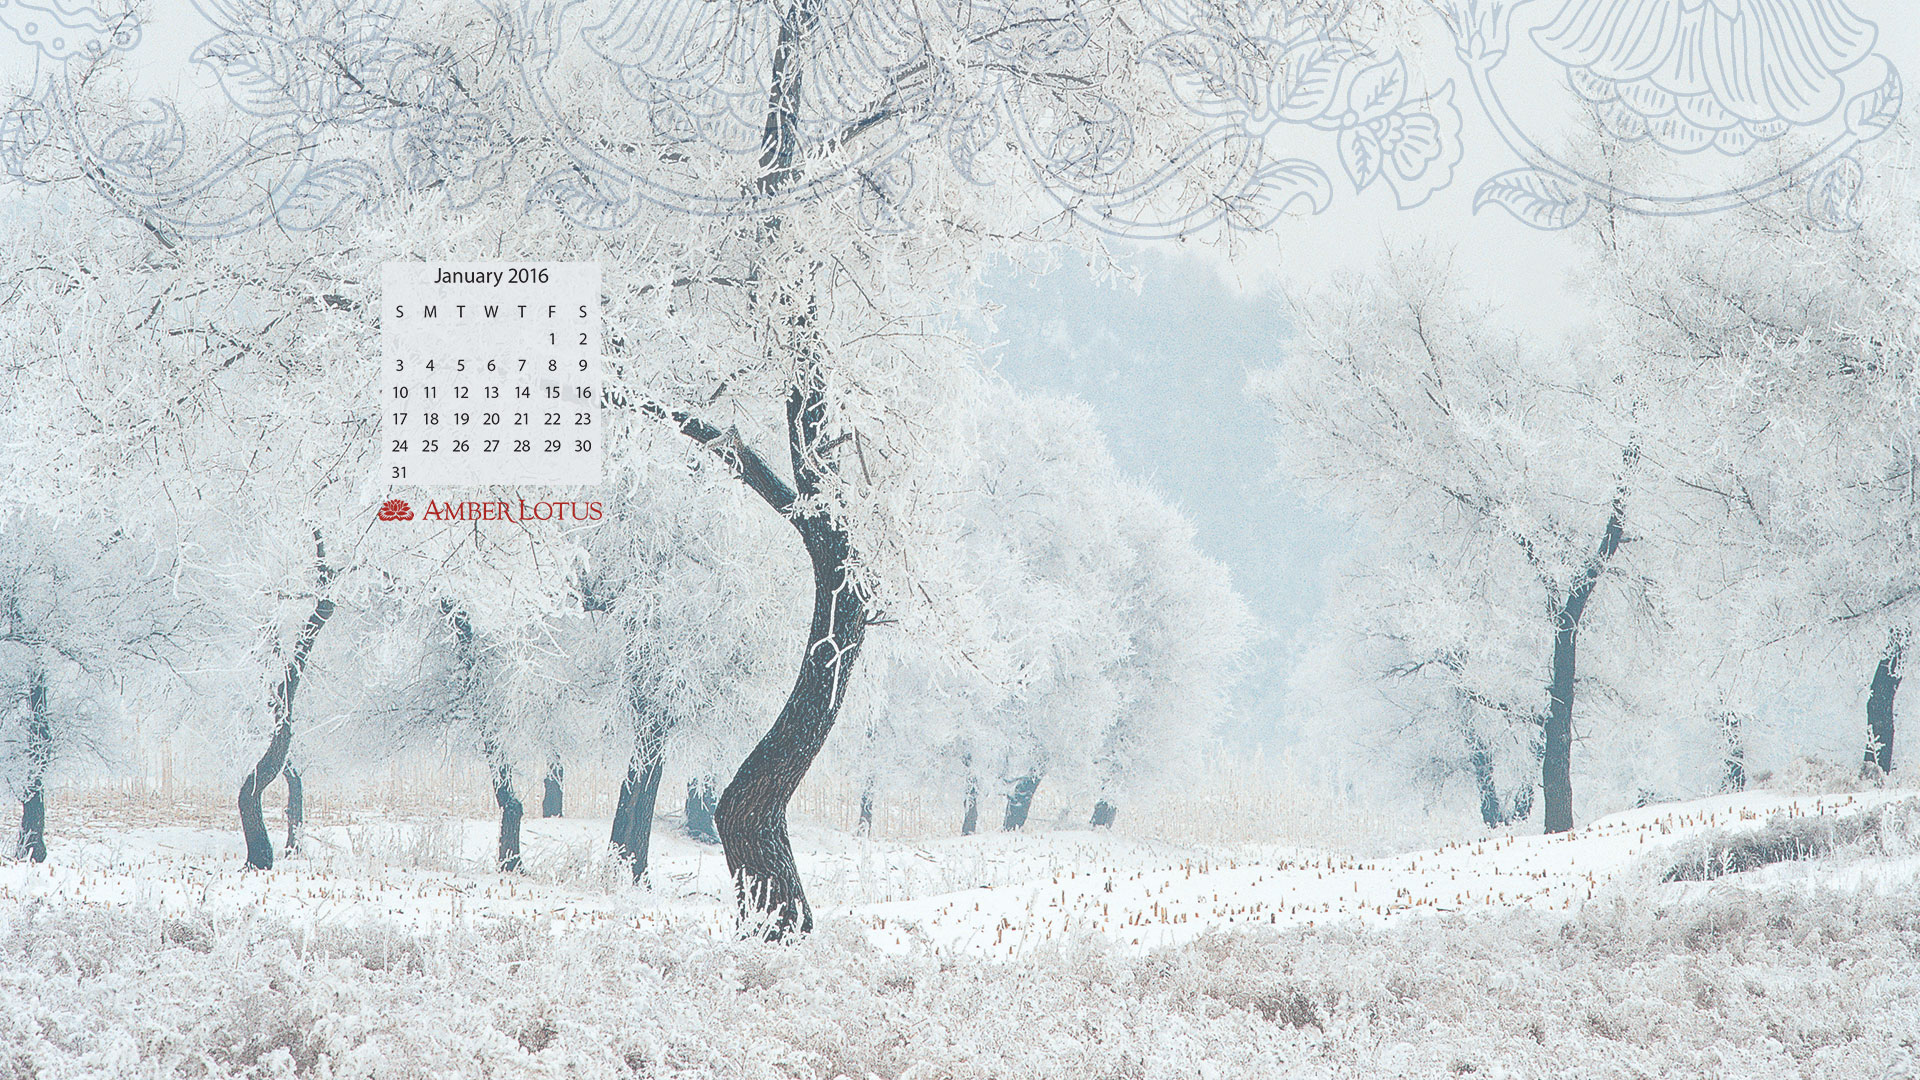 desktop wallpaper calendar — january 2016 — free to download - amber